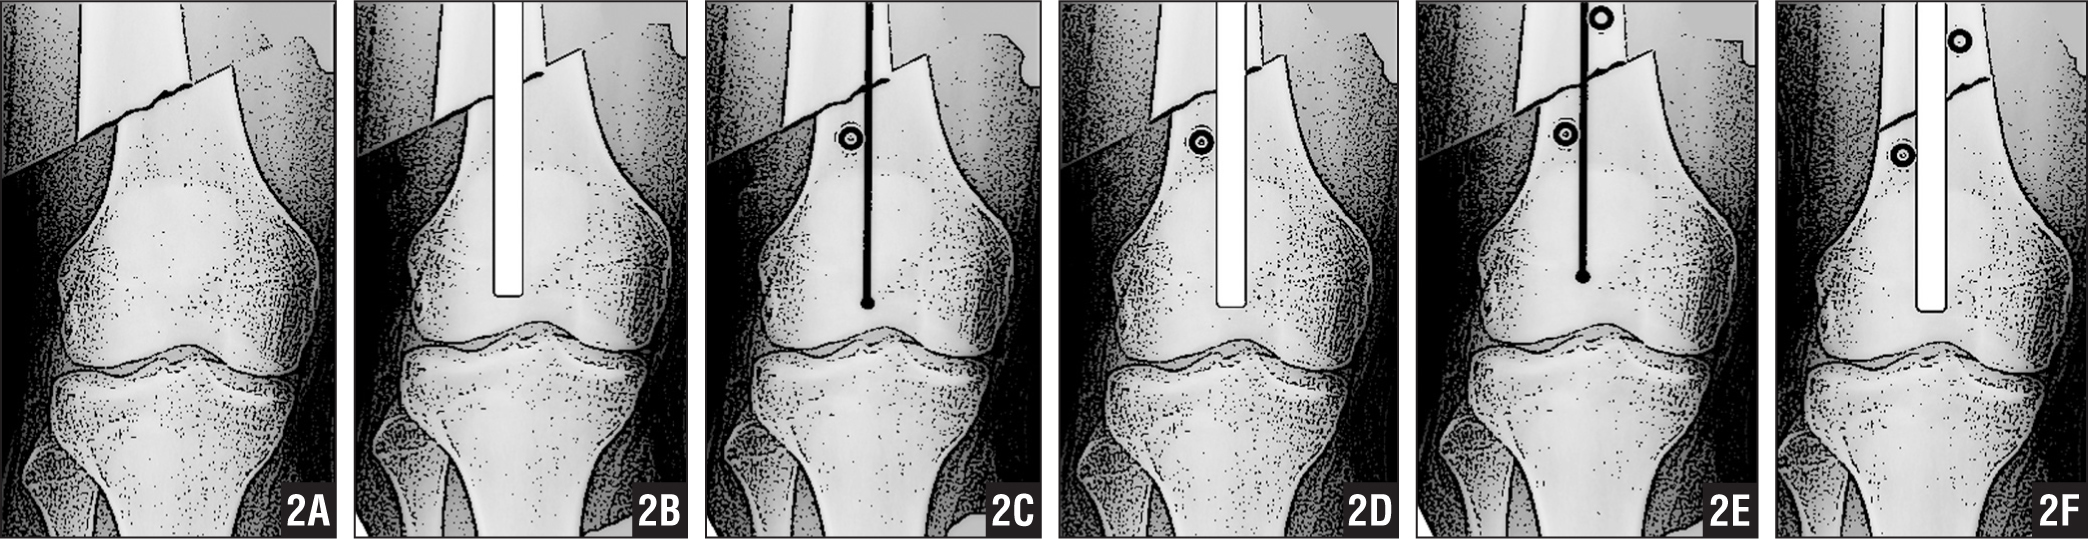 Illustrations showing the use of blocking screws to correct a deformity on the coronal plane. Valgus or varus deformity or translation may occur depending on the fracture morphology on coronal plane in distal femur fractures (A). If satisfactory deformity correction cannot be obtained when the nail is applied, the nail is removed and the guidewire is left inside (B). If valgus deformity or translation to the medial side is present, a blocking screw is placed on the large distal fragment from the lateral side of the guidewire in anteroposterior direction (C). The nail is reapplied, and reduction is achieved (D). If desired reduction is still not achieved, the nail is removed and a second blocking screw is applied to the proximal fragment from the medial side in valgus deformity (E). The nail is readvanced, and reduction is achieved (F).